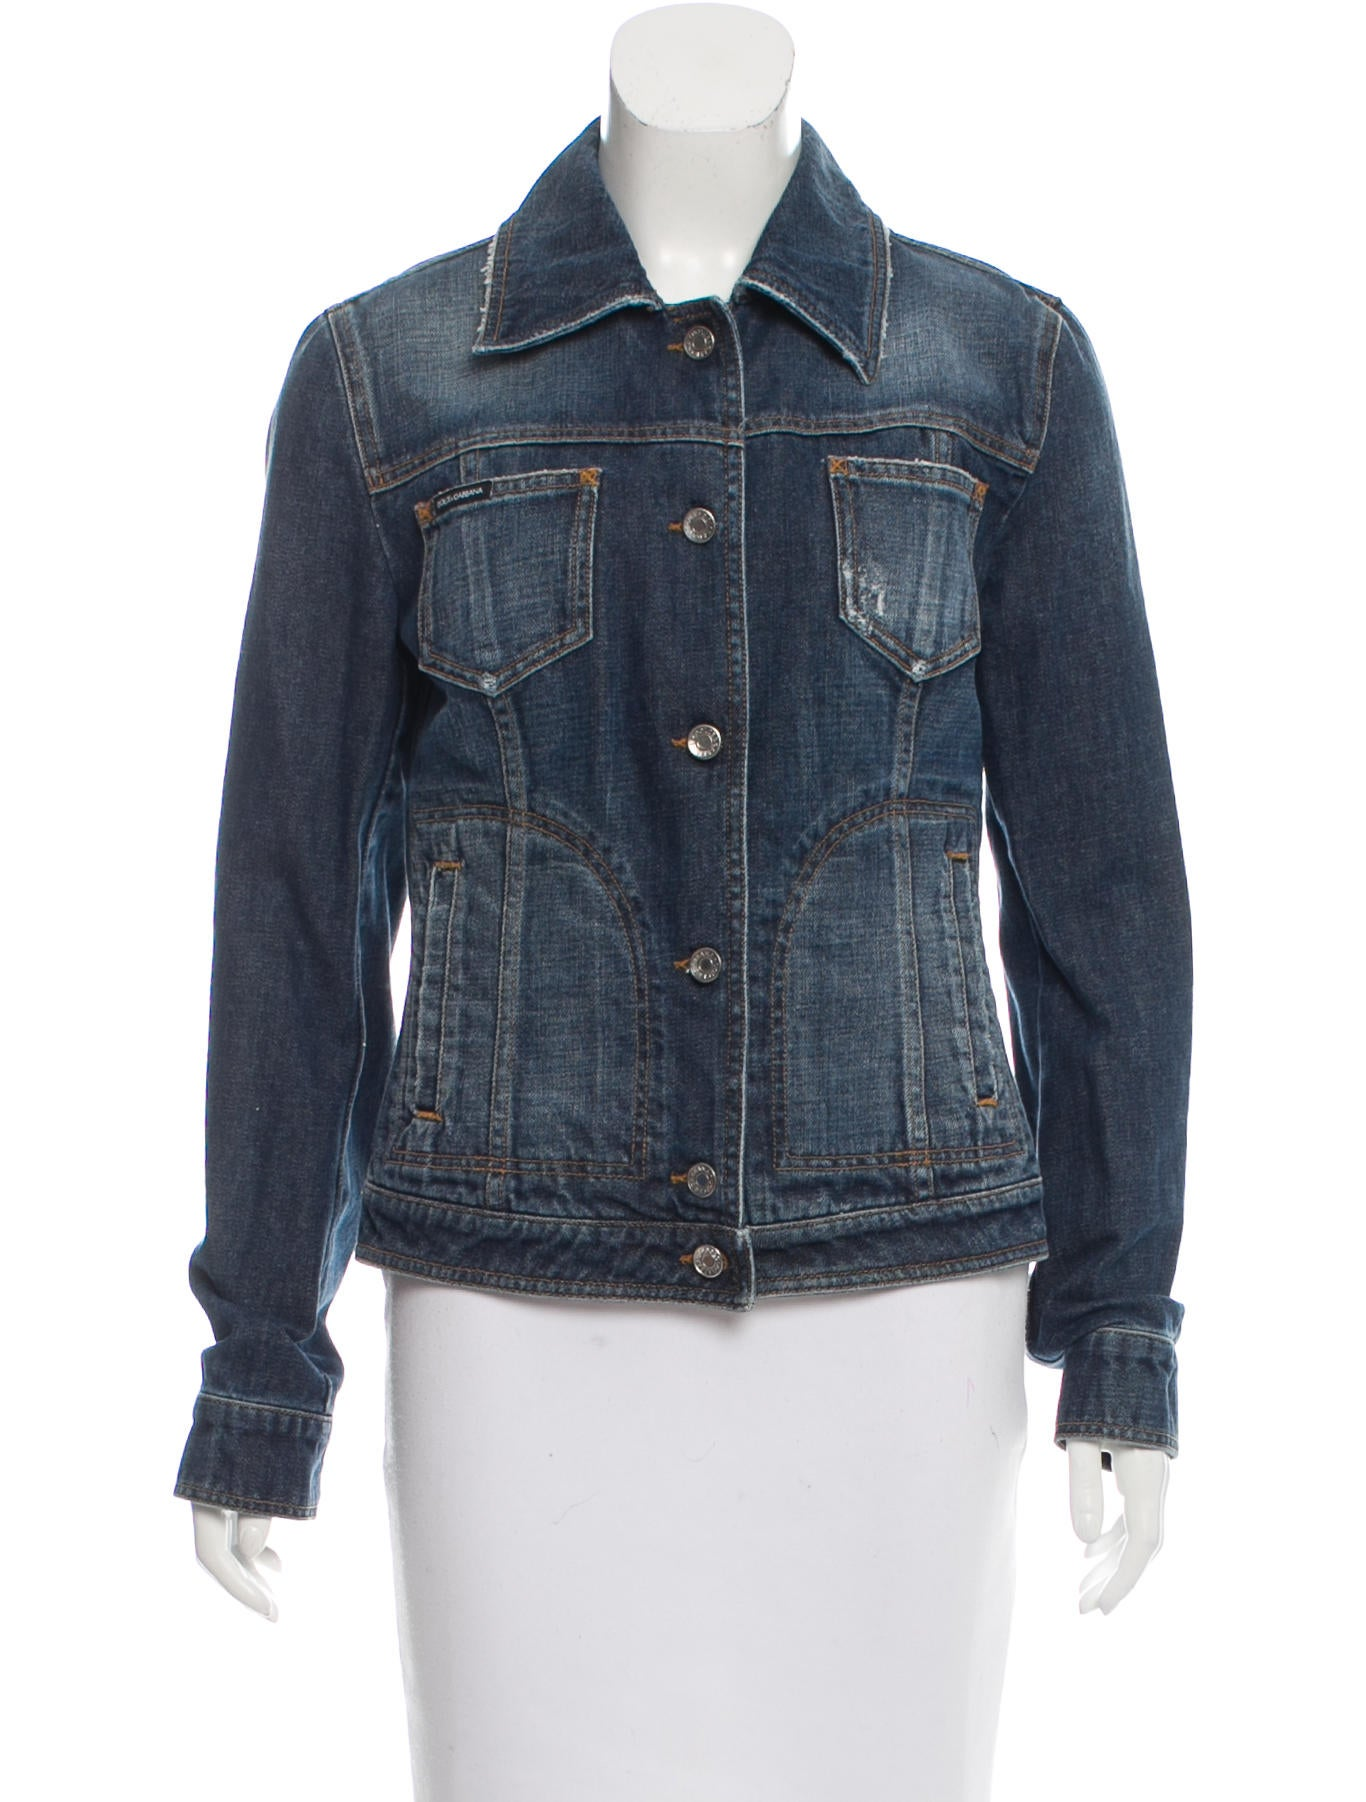 Dolce u0026 Gabbana Distressed Denim Jacket - Clothing - DAG76310 | The RealReal